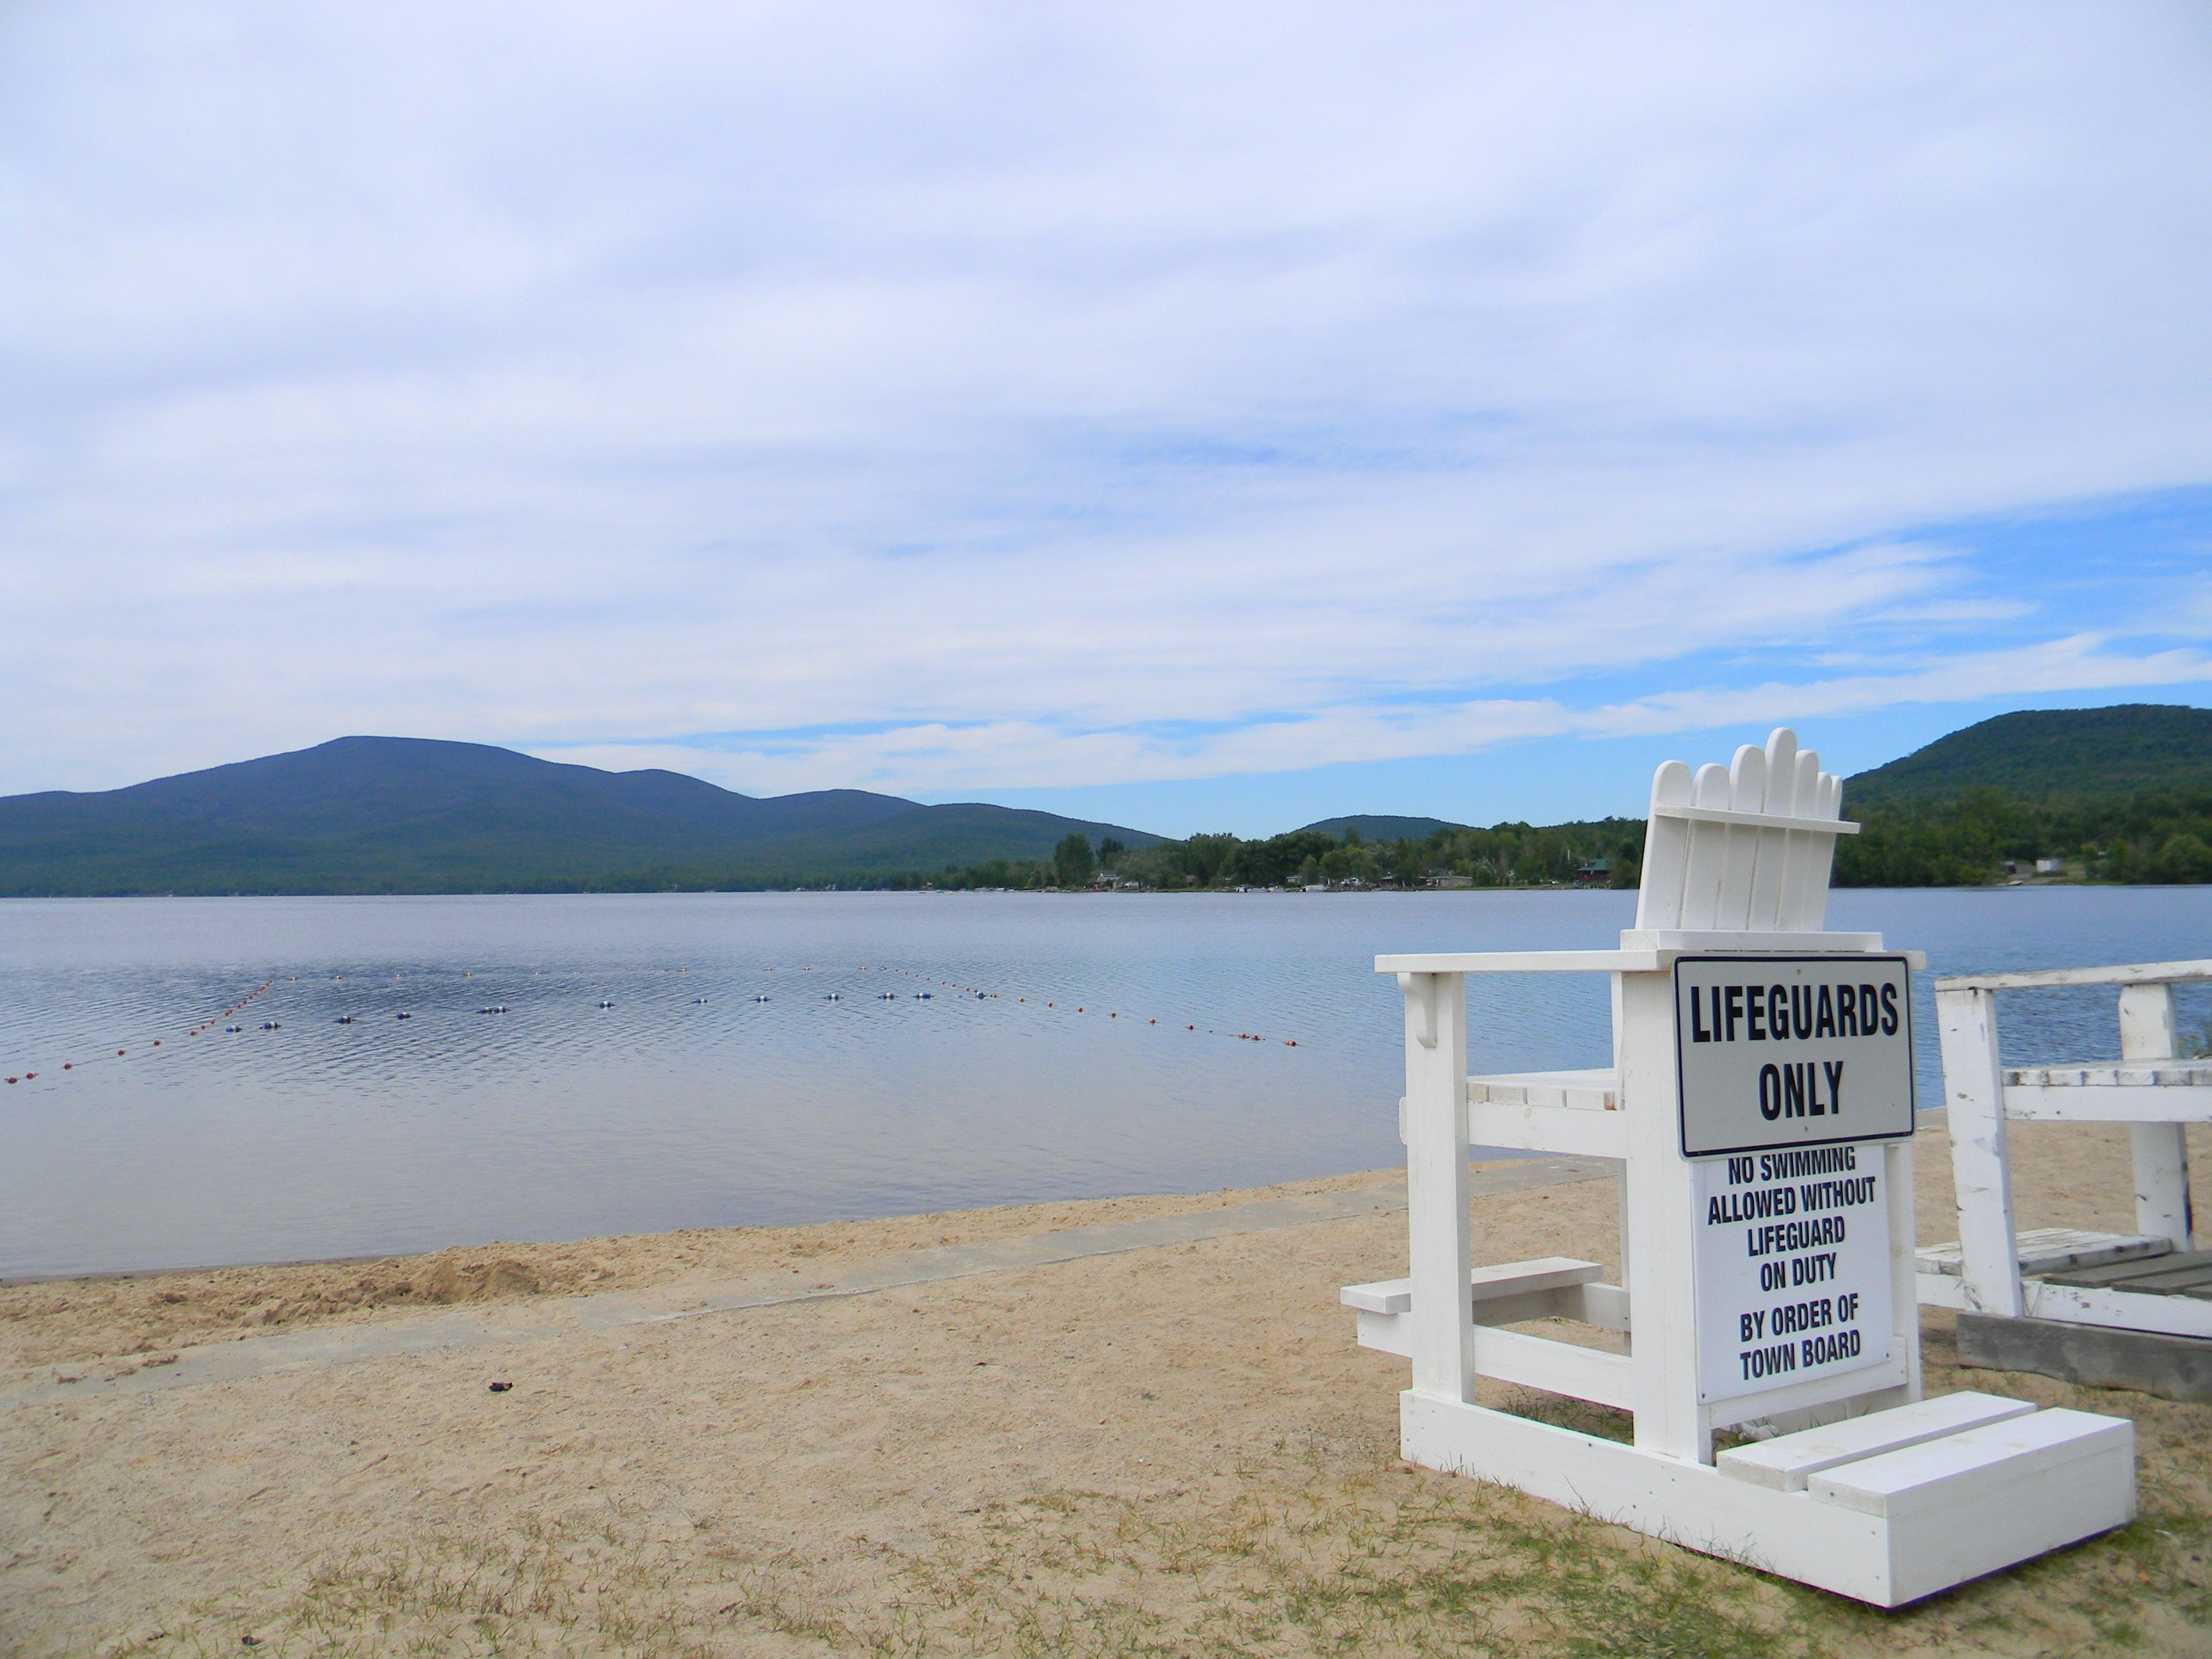 New york clinton county chazy - Explore Chazy Lake Located Just 5 Miles West Of Dannemora Ny There